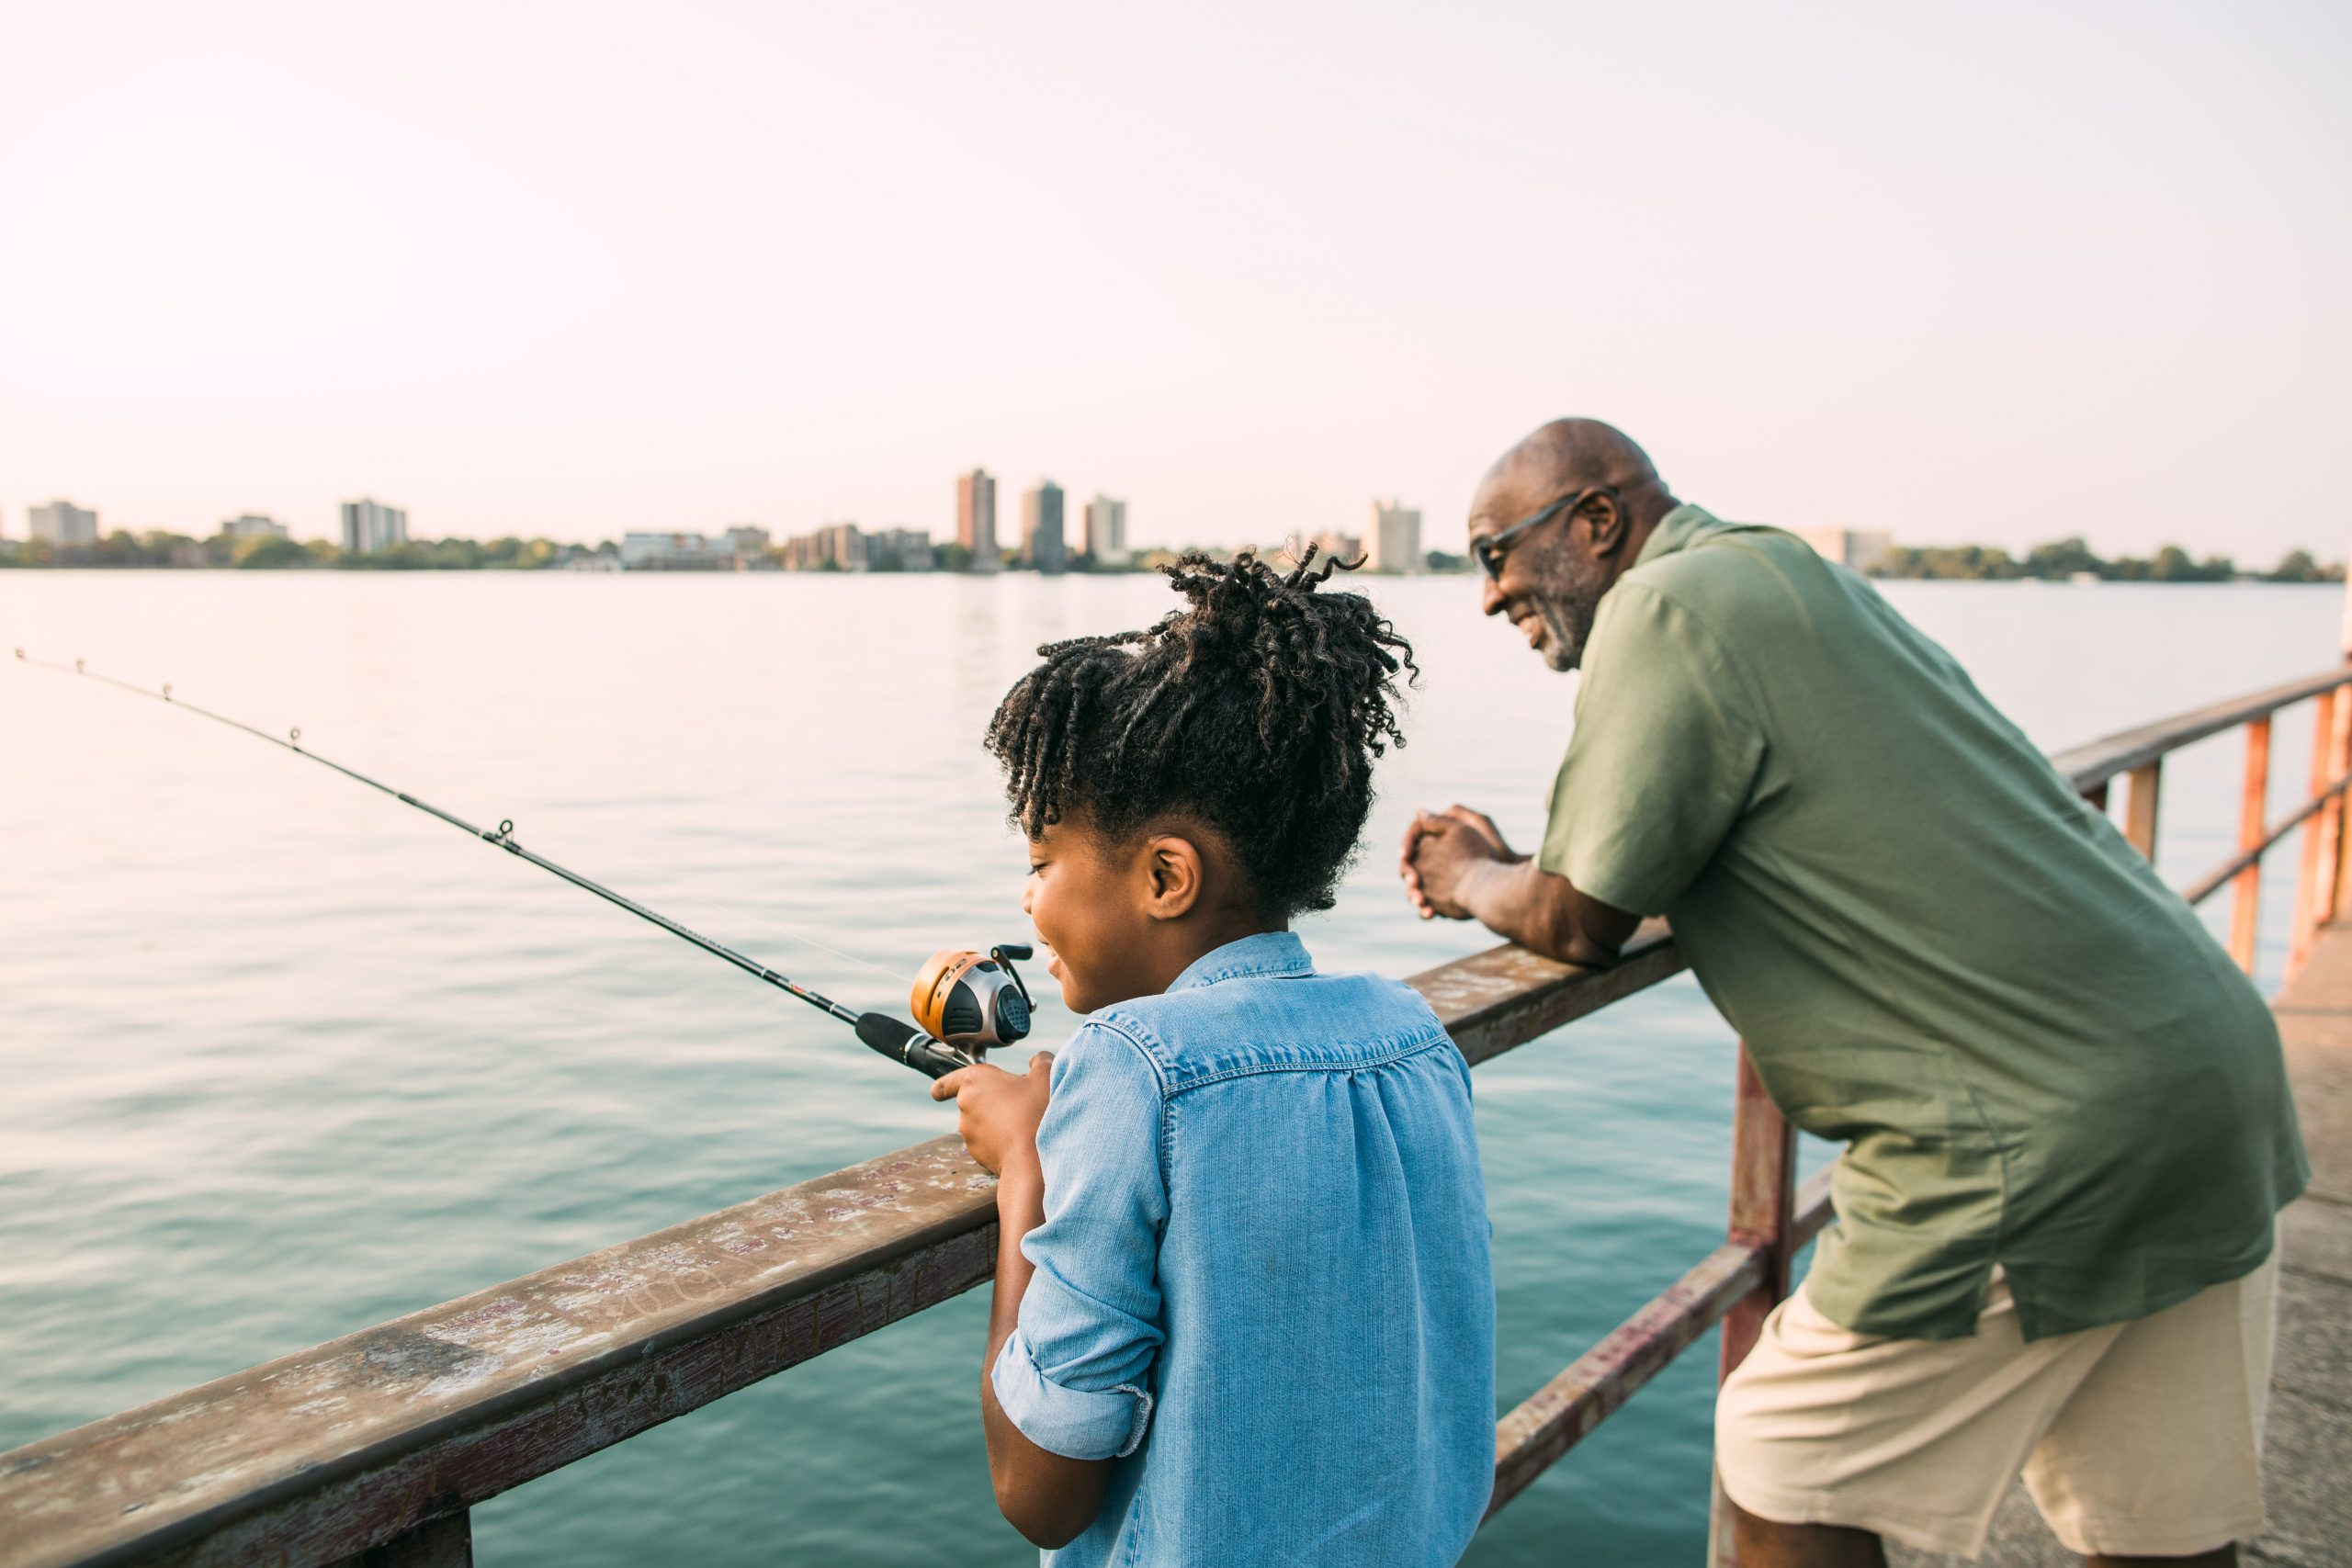 State looks to kick off another banner year of fishing  with Free Fishing Weekend June 12-13